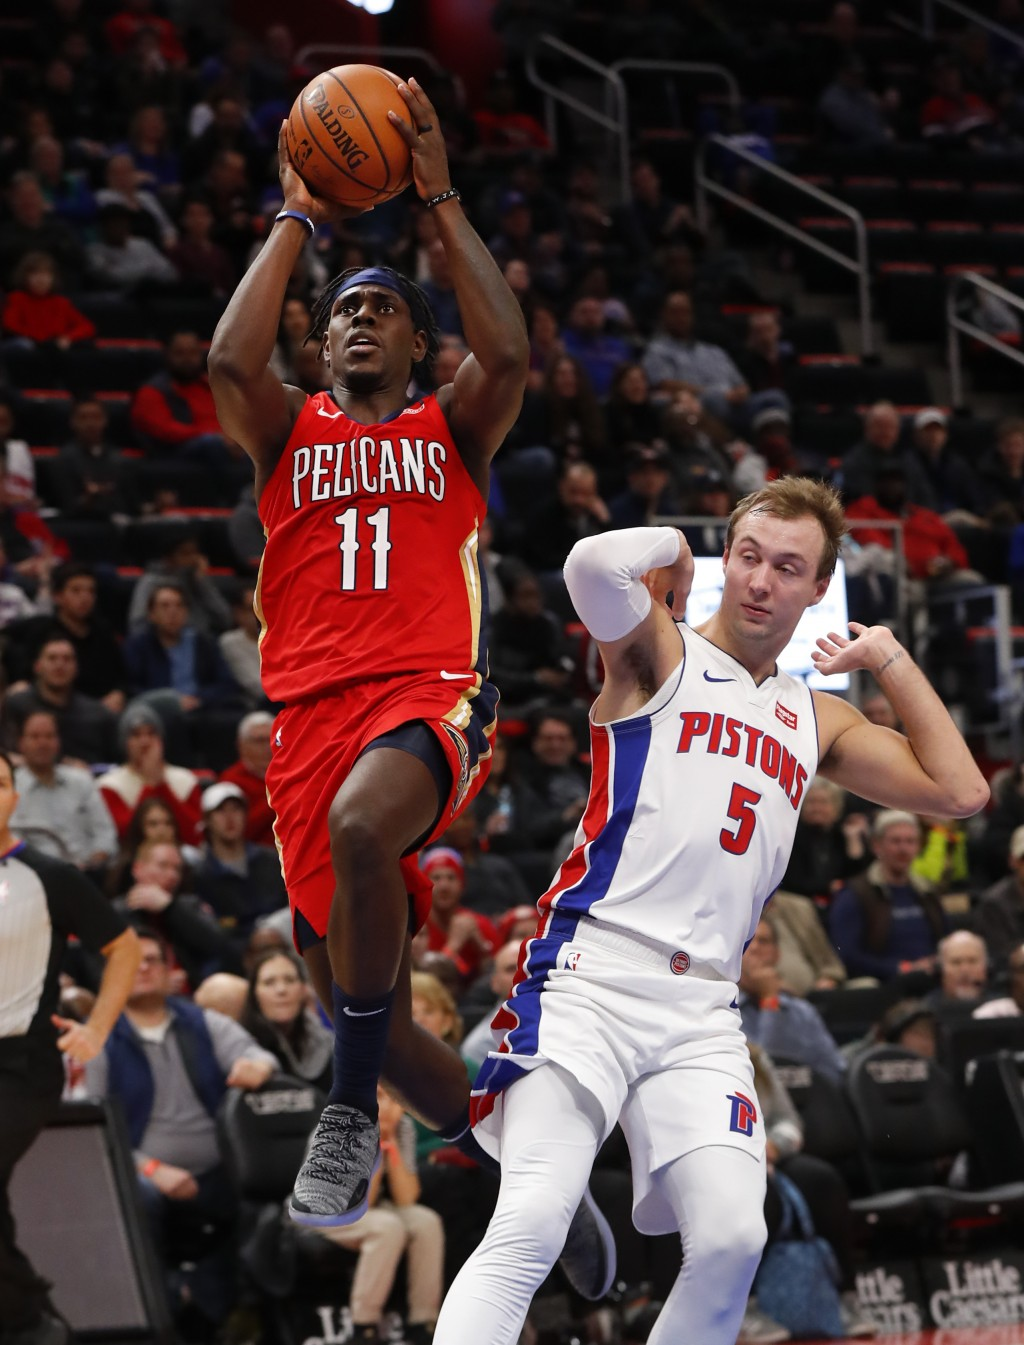 New Orleans Pelicans guard Jrue Holiday (11) drives against Detroit Pistons guard Luke Kennard (5) in the second half of an NBA basketball game in Det...